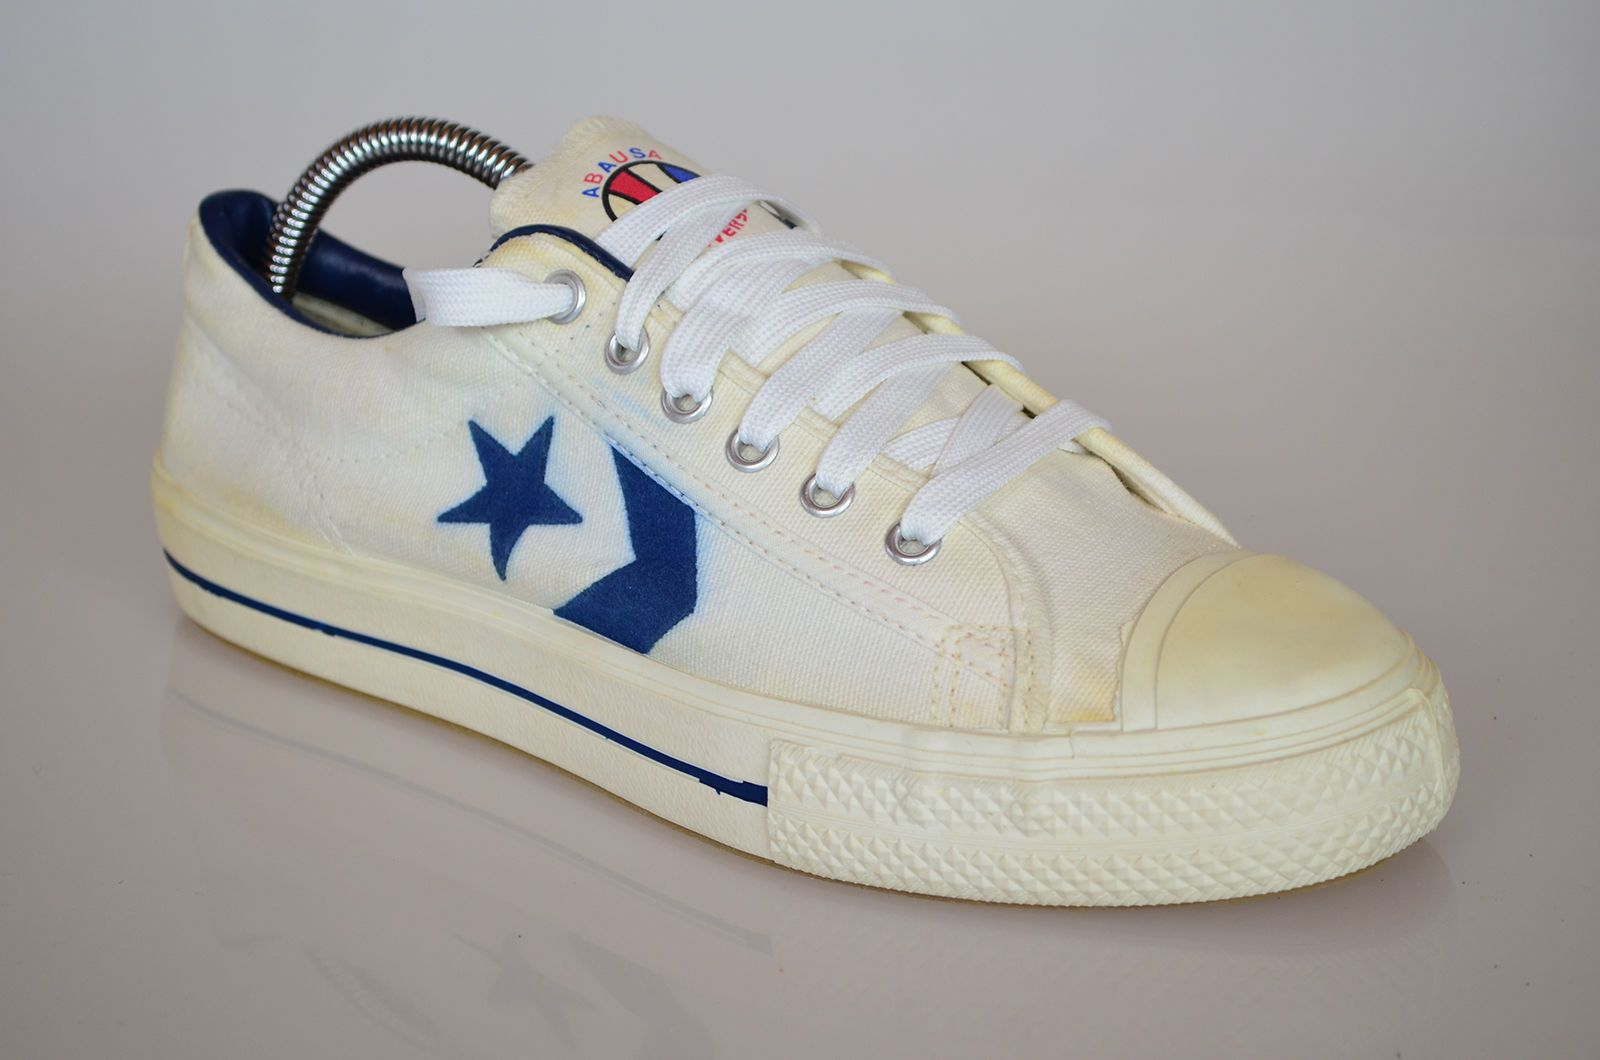 Vintage 70's Converse All Star ABA Low Top Sneaker Made in USA Size 7.5    eBay